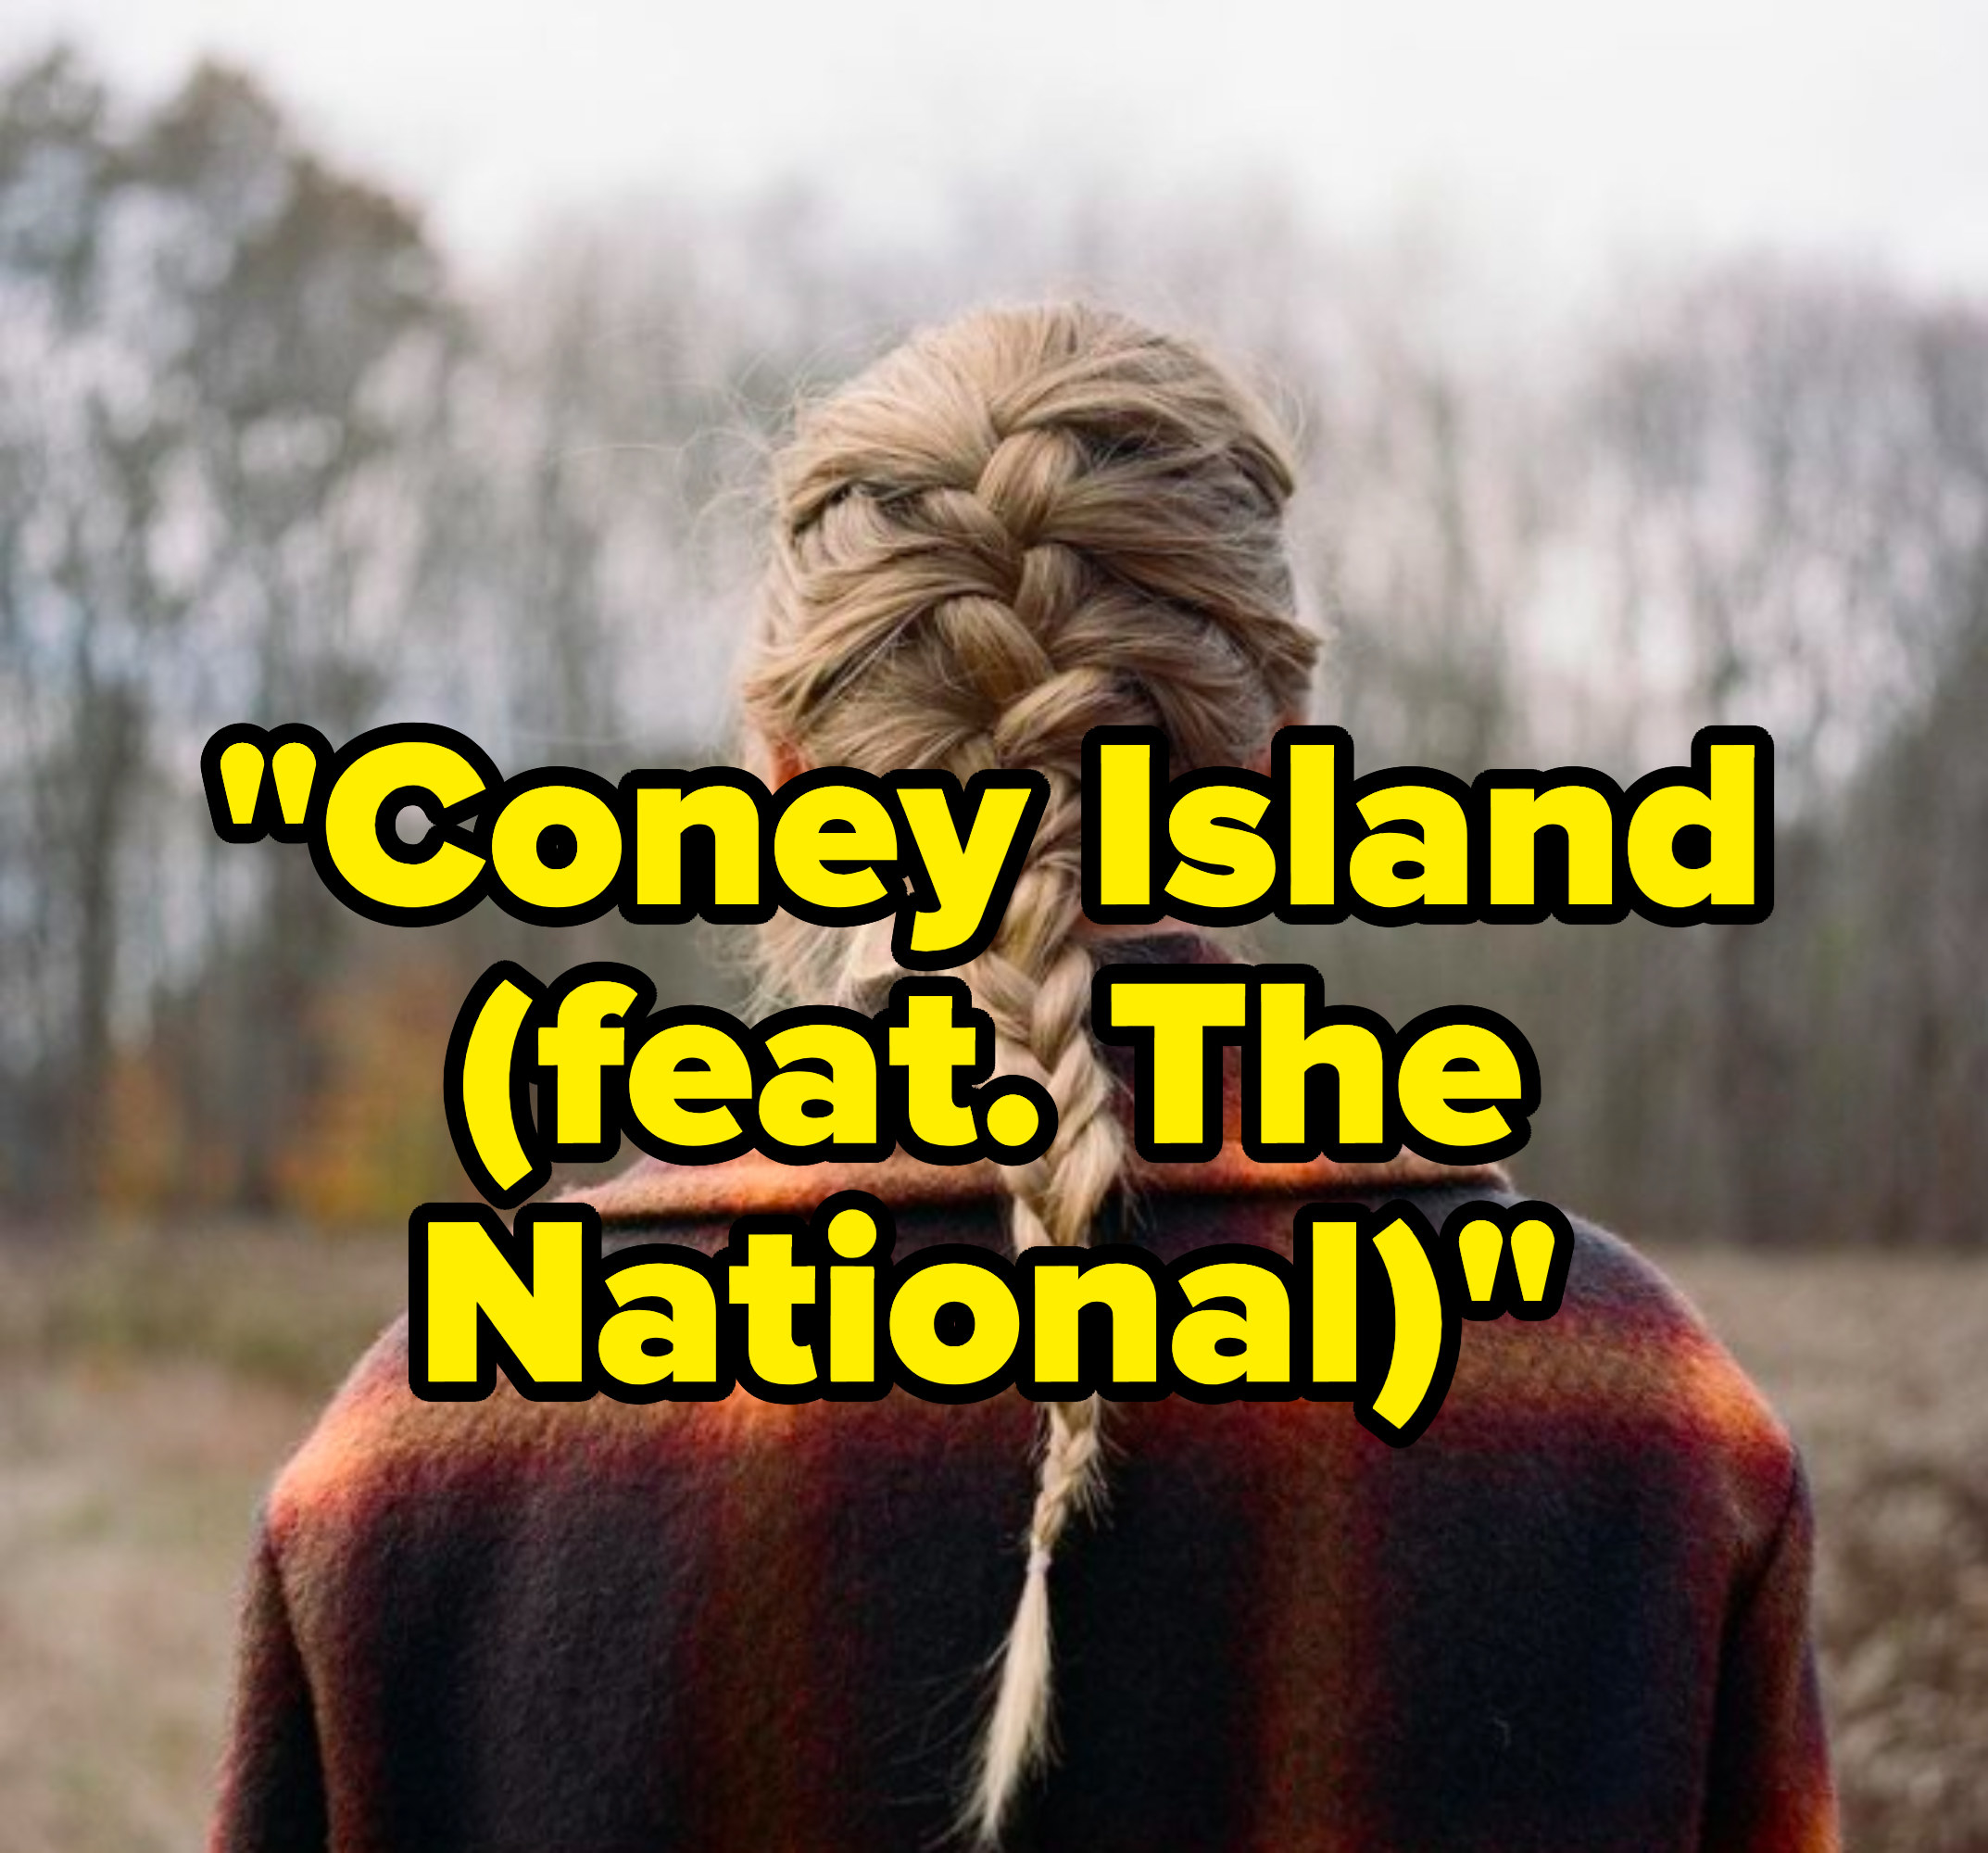 """""""Coney Island (feat The National)"""" written over the """"Evermore"""" album cover"""